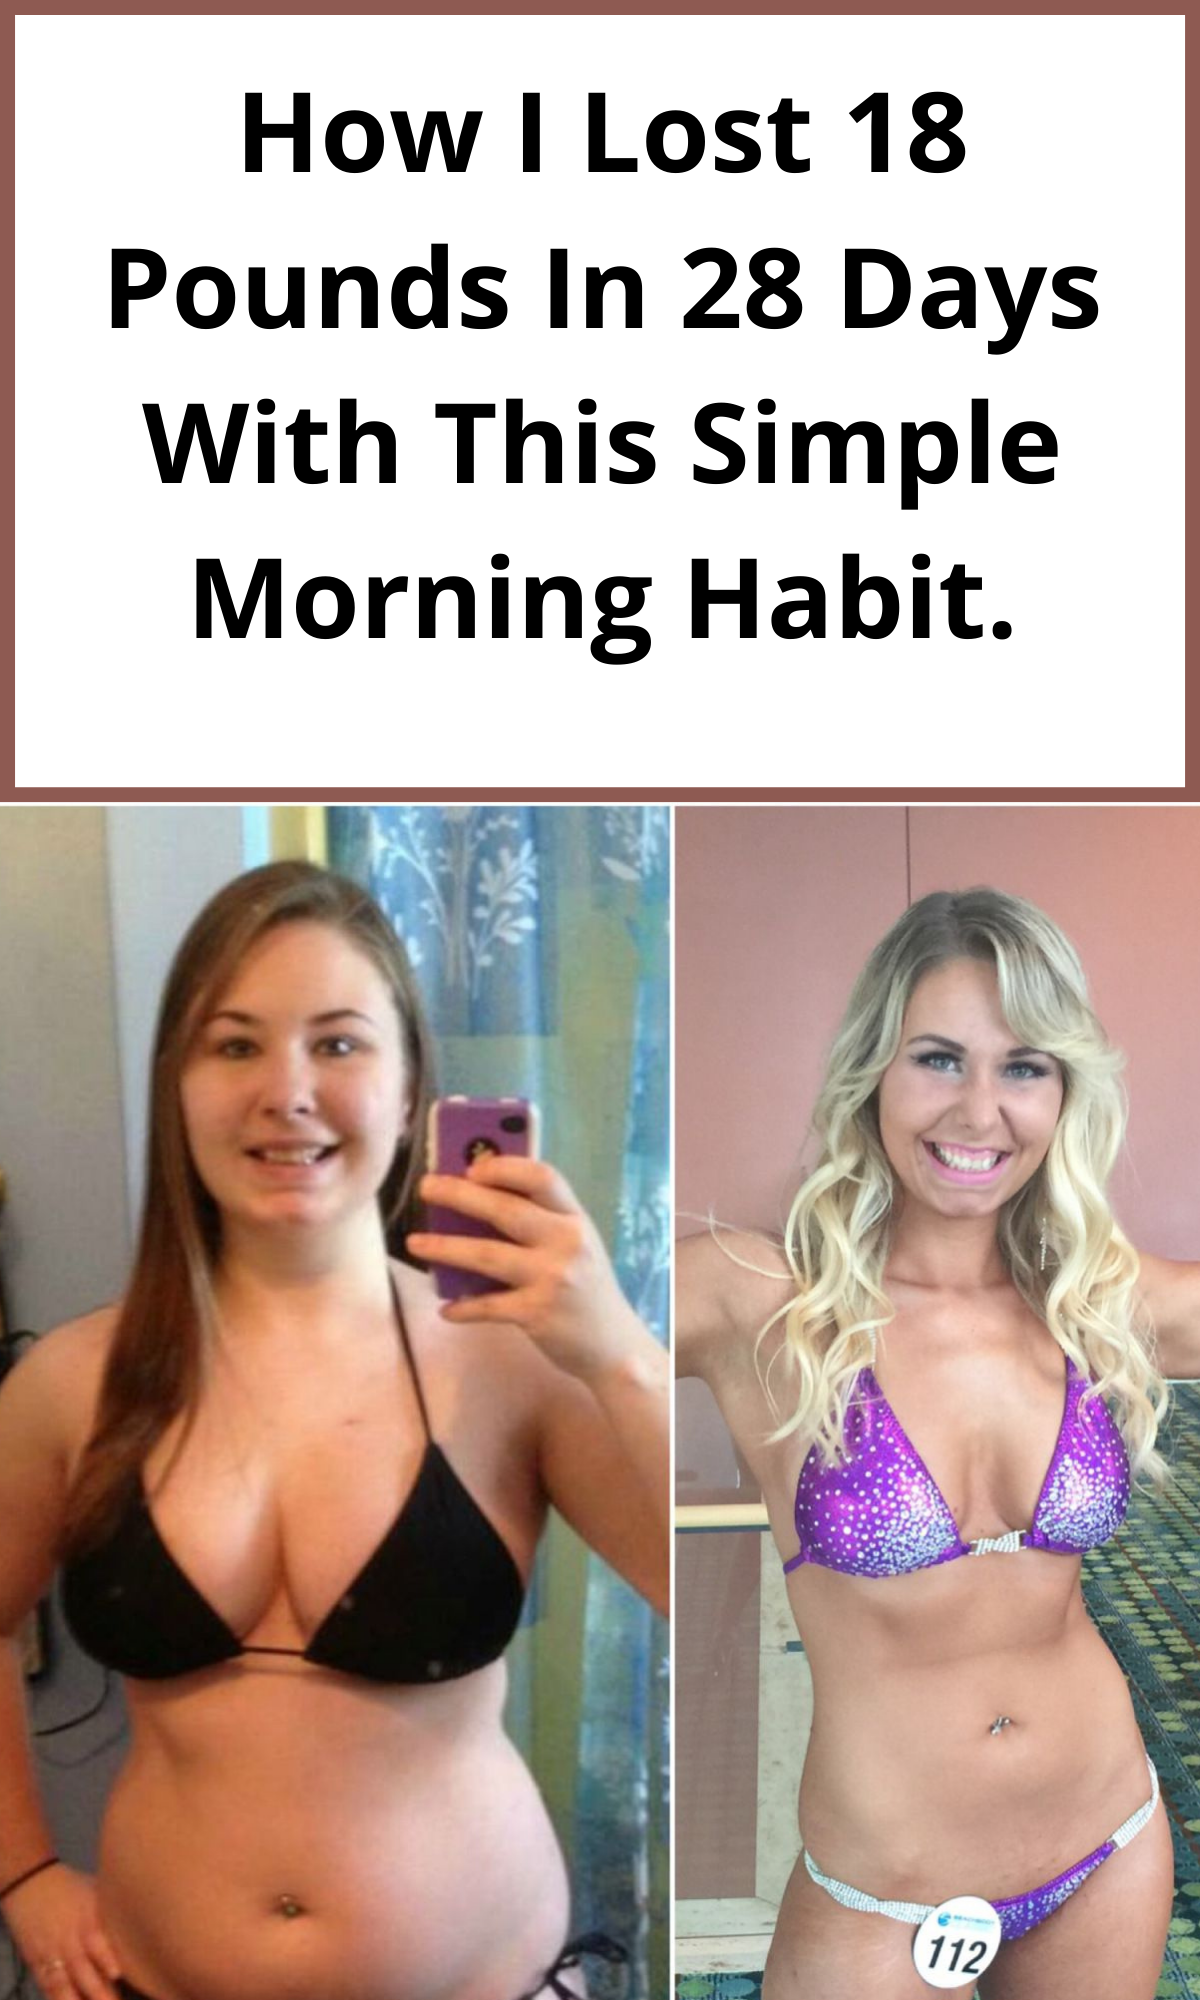 How to lose belly fat fast, how to lose weight in a week, flat stomach diet plan?